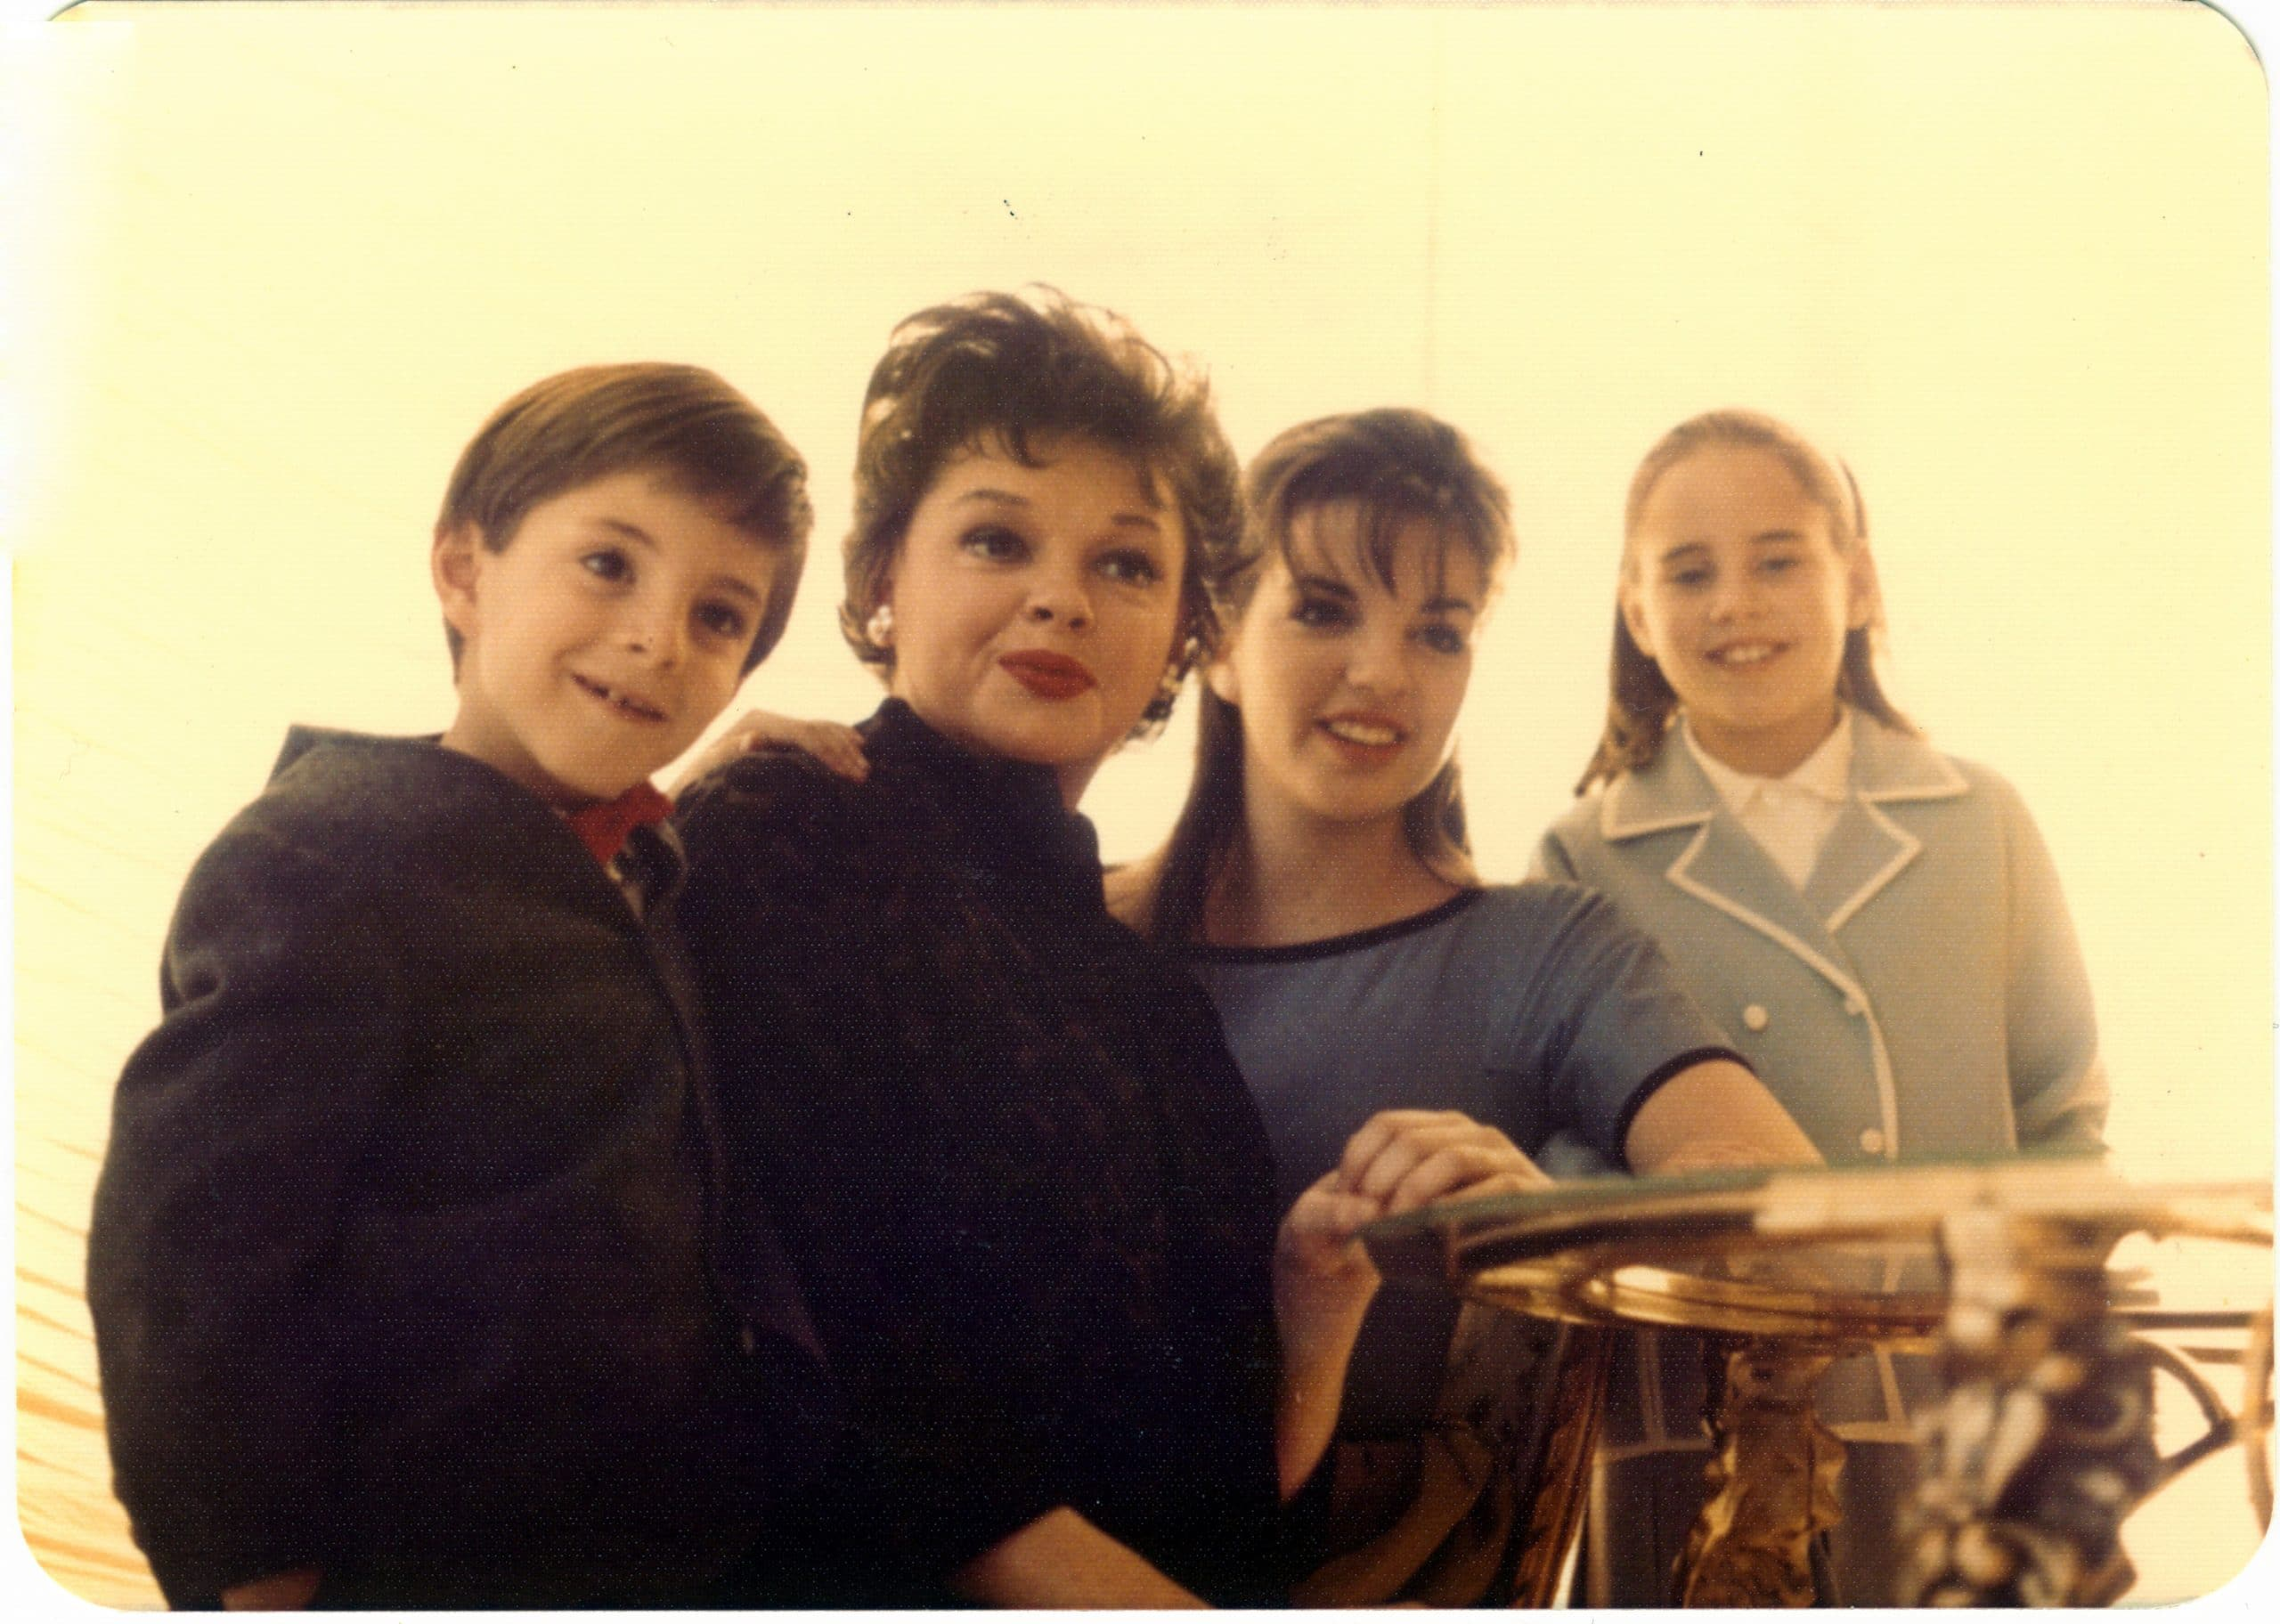 Judy Garland, with her children, from left, Joey Luft, Liza Minnelli, and Lorna Luft, 1962